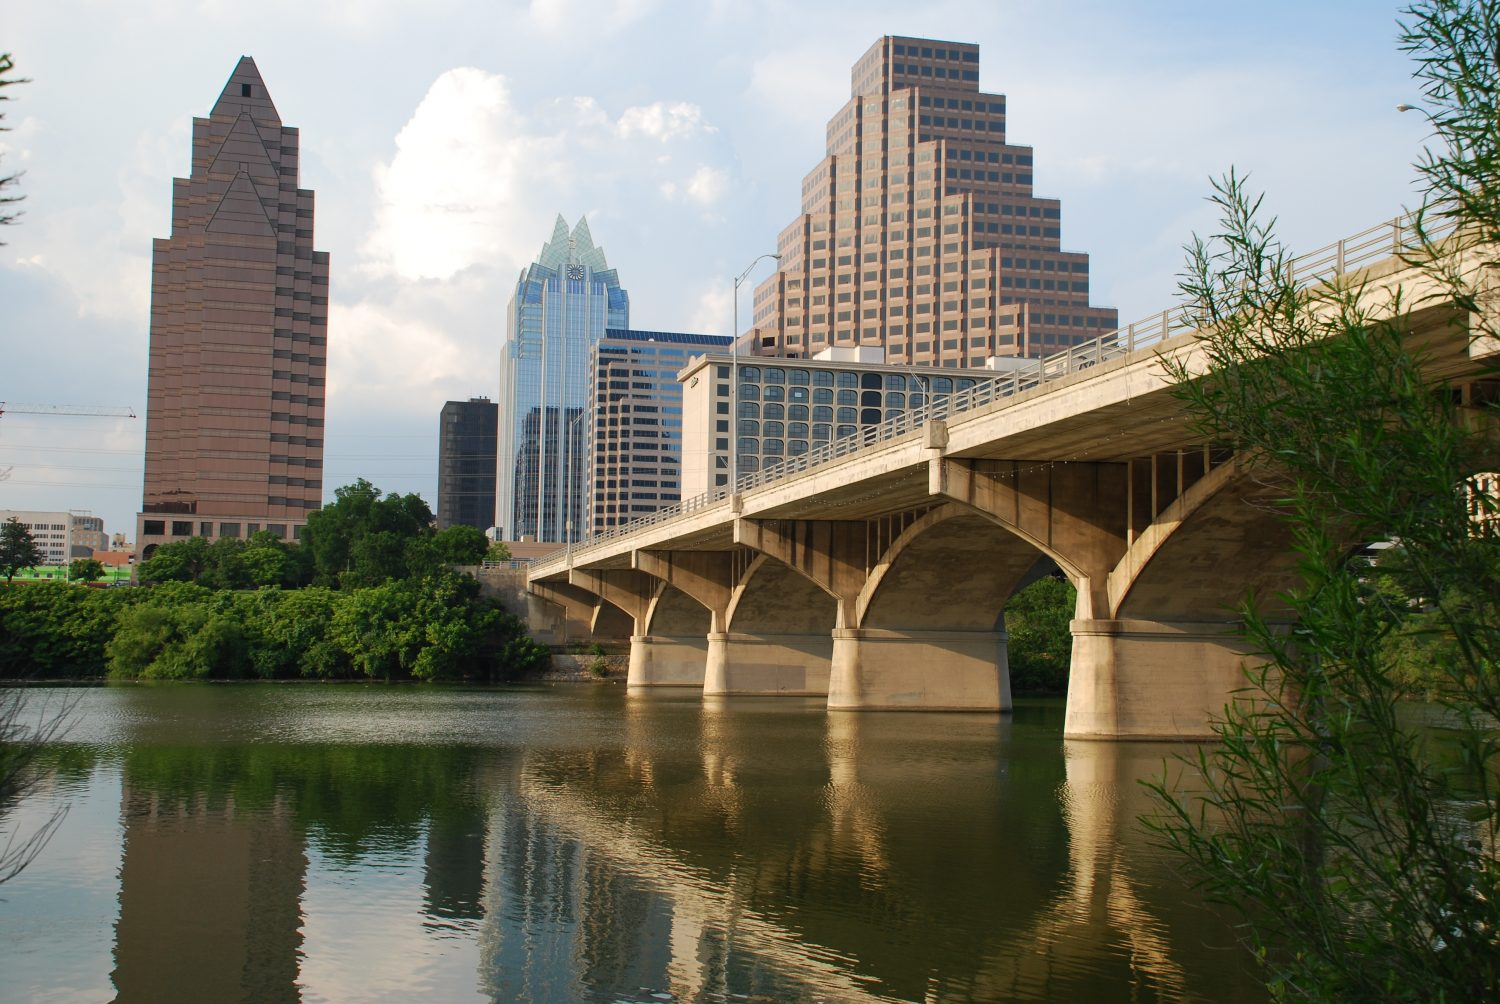 Austin's Congress Bridge